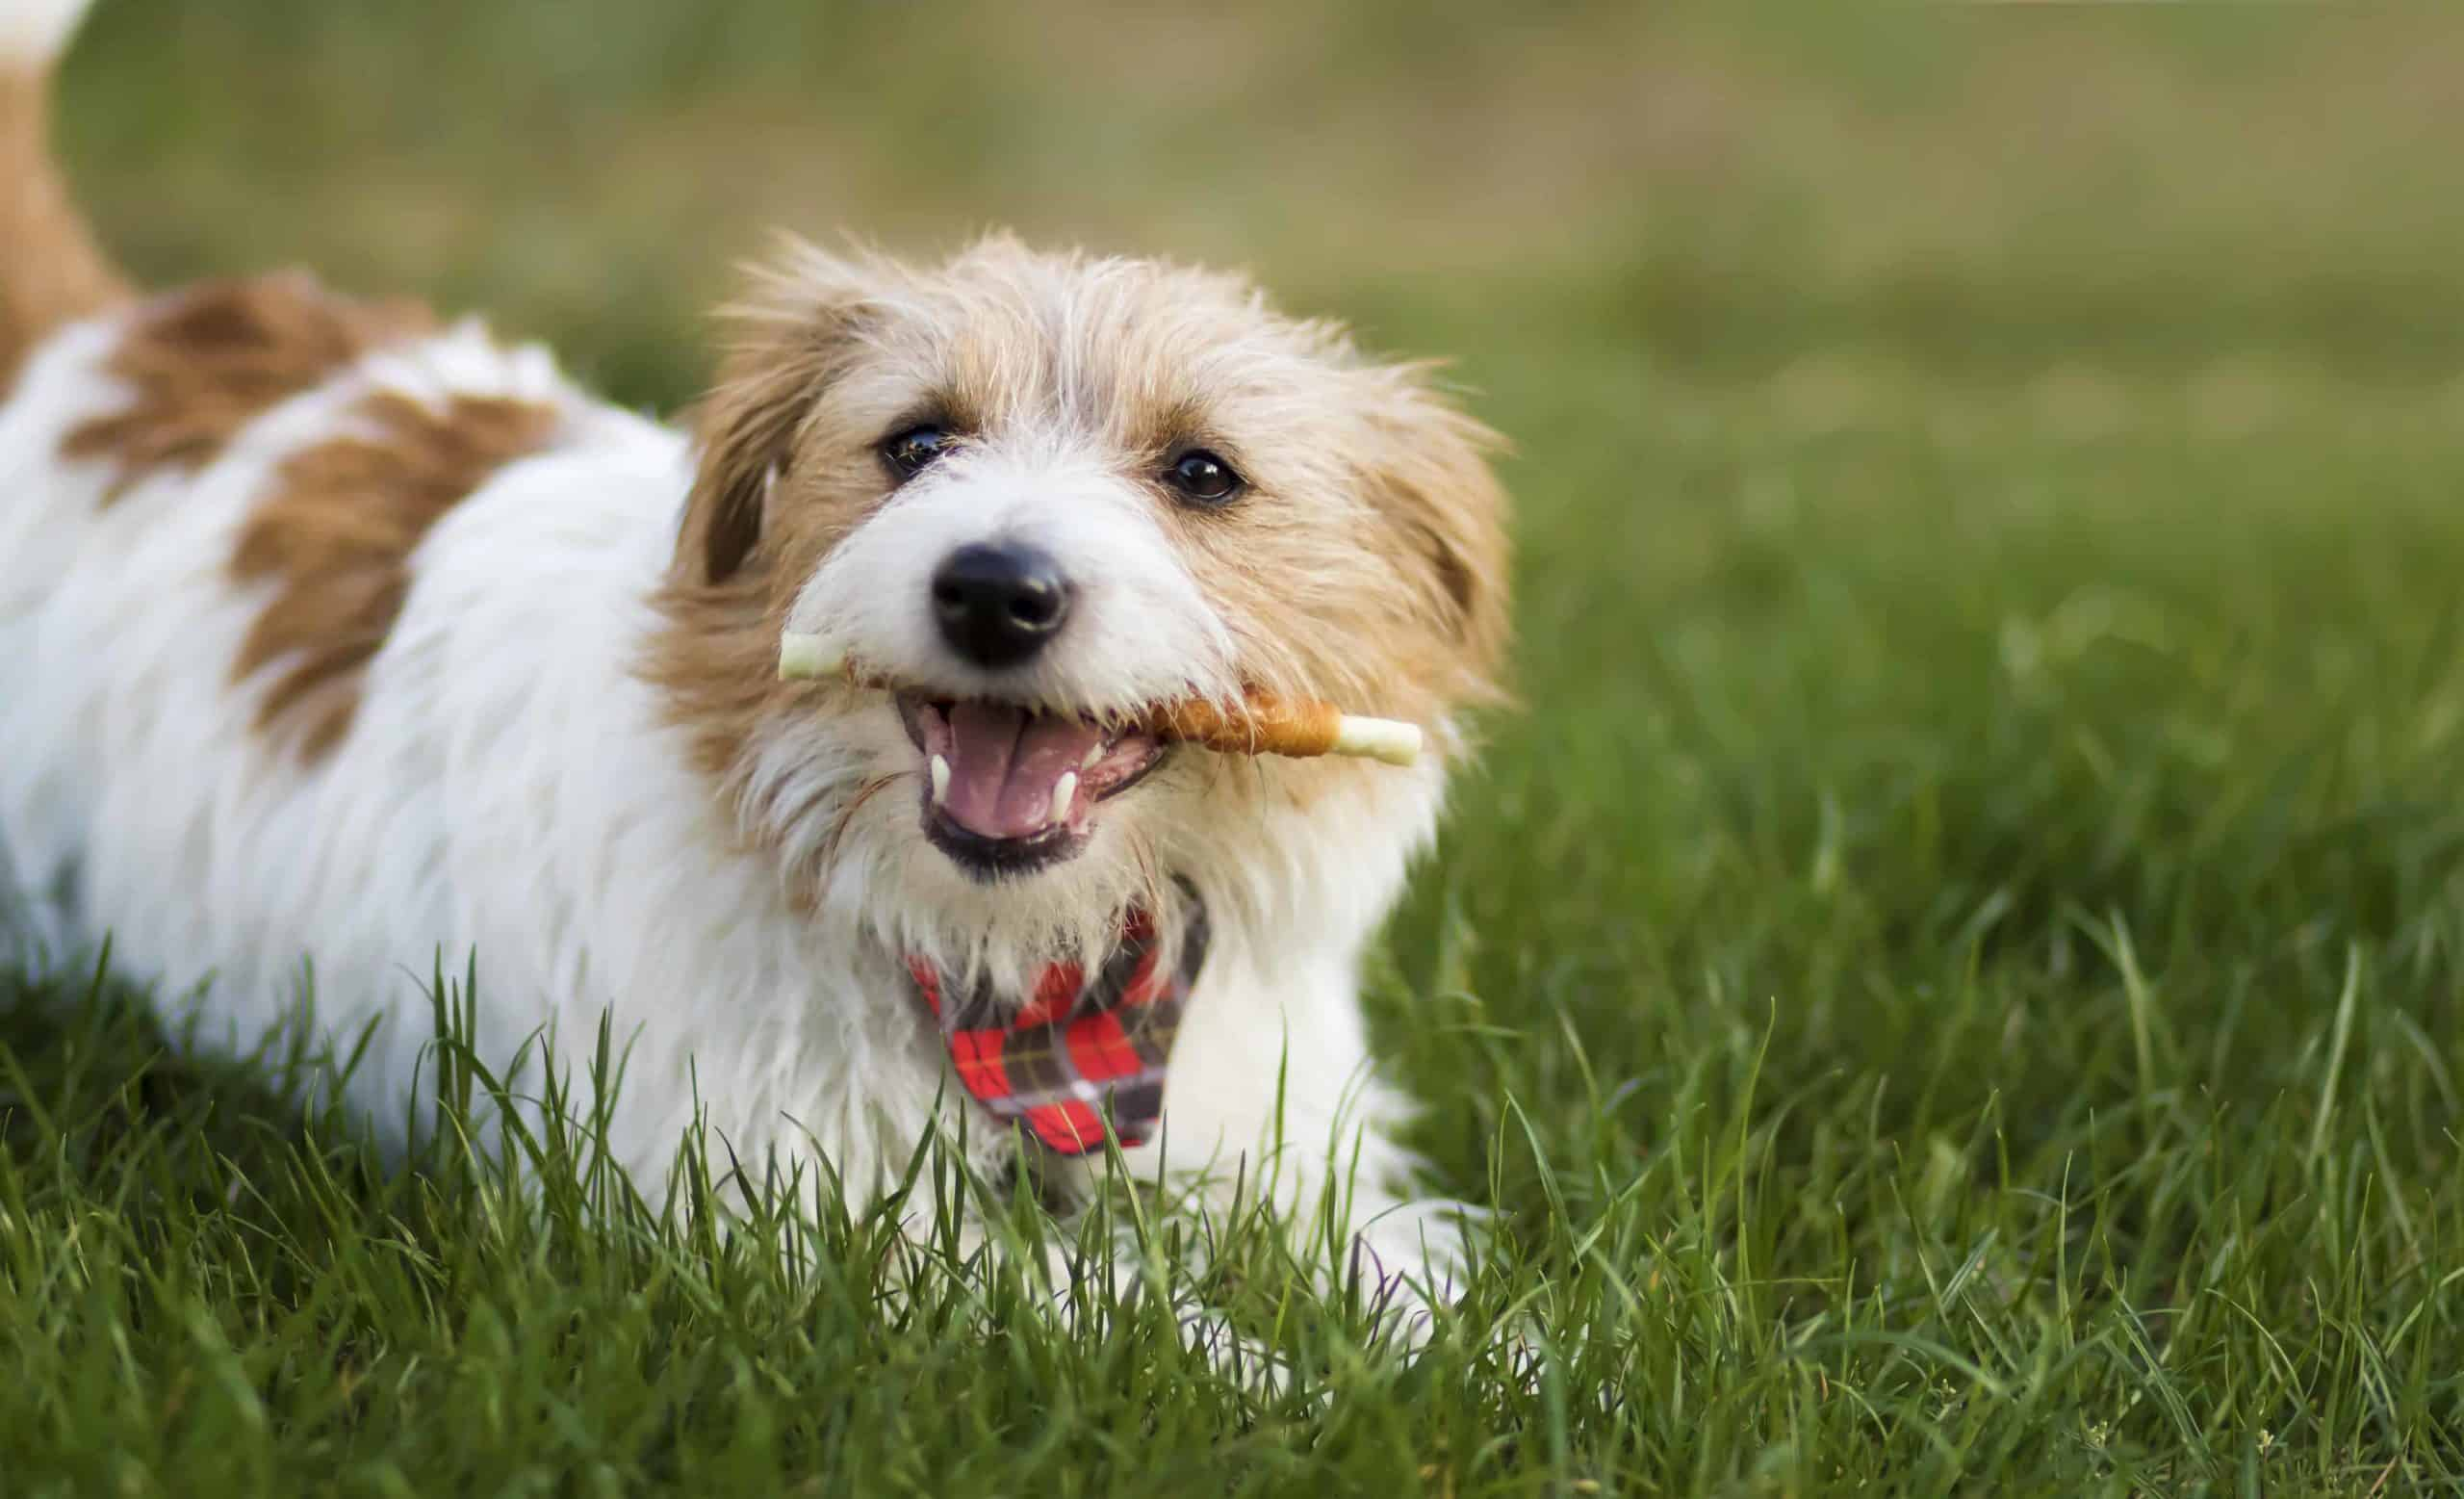 Maltese eats dog treat. Using dog treats helps reinforce good behavior during training. Repeated treat feeding rewards your dog for a job well done.